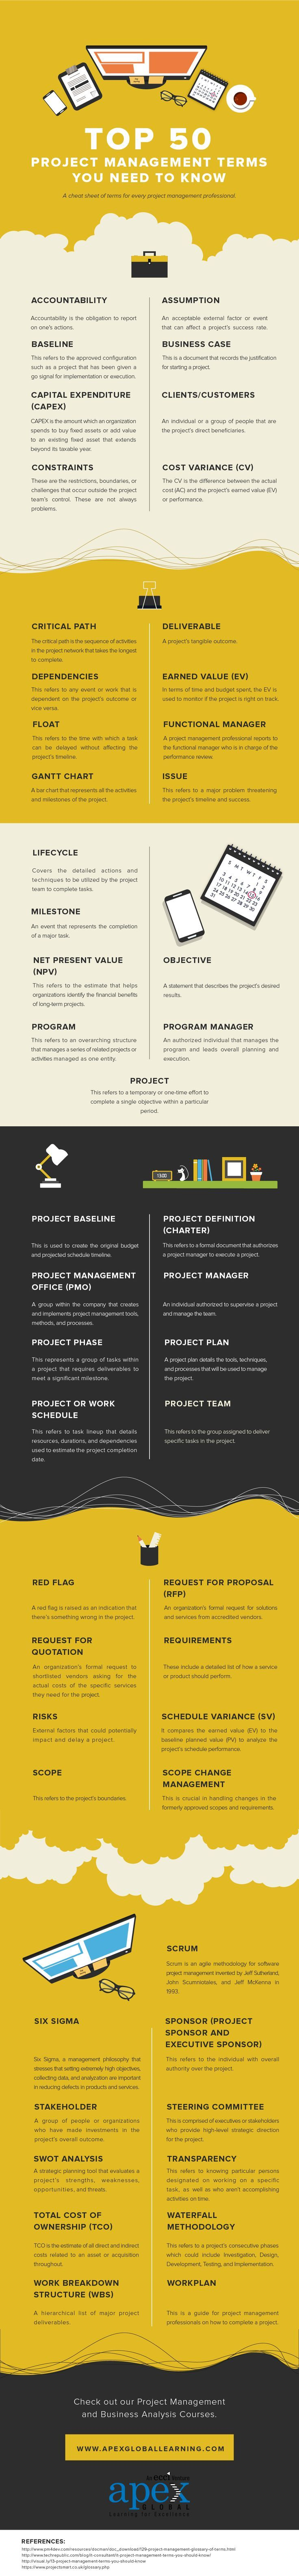 best ideas about project manager resume project what the most common project management jargon actually mean infographic projectmanagement